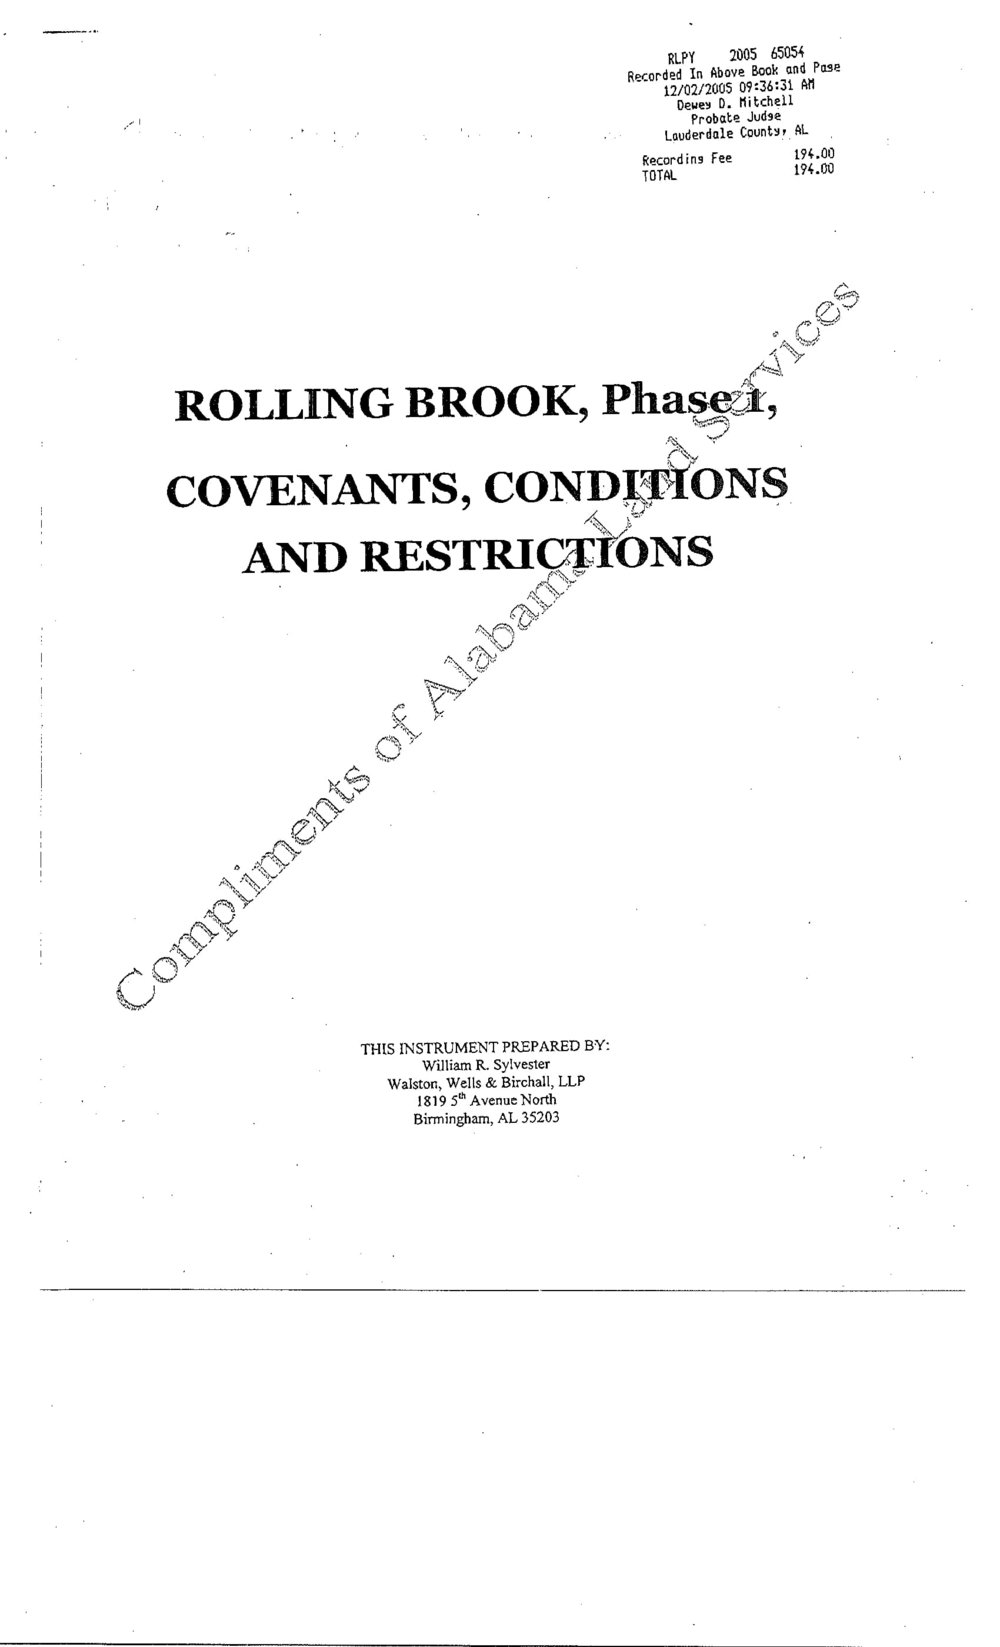 Covenants-Rolling-Brook-Phase-1-01.jpg